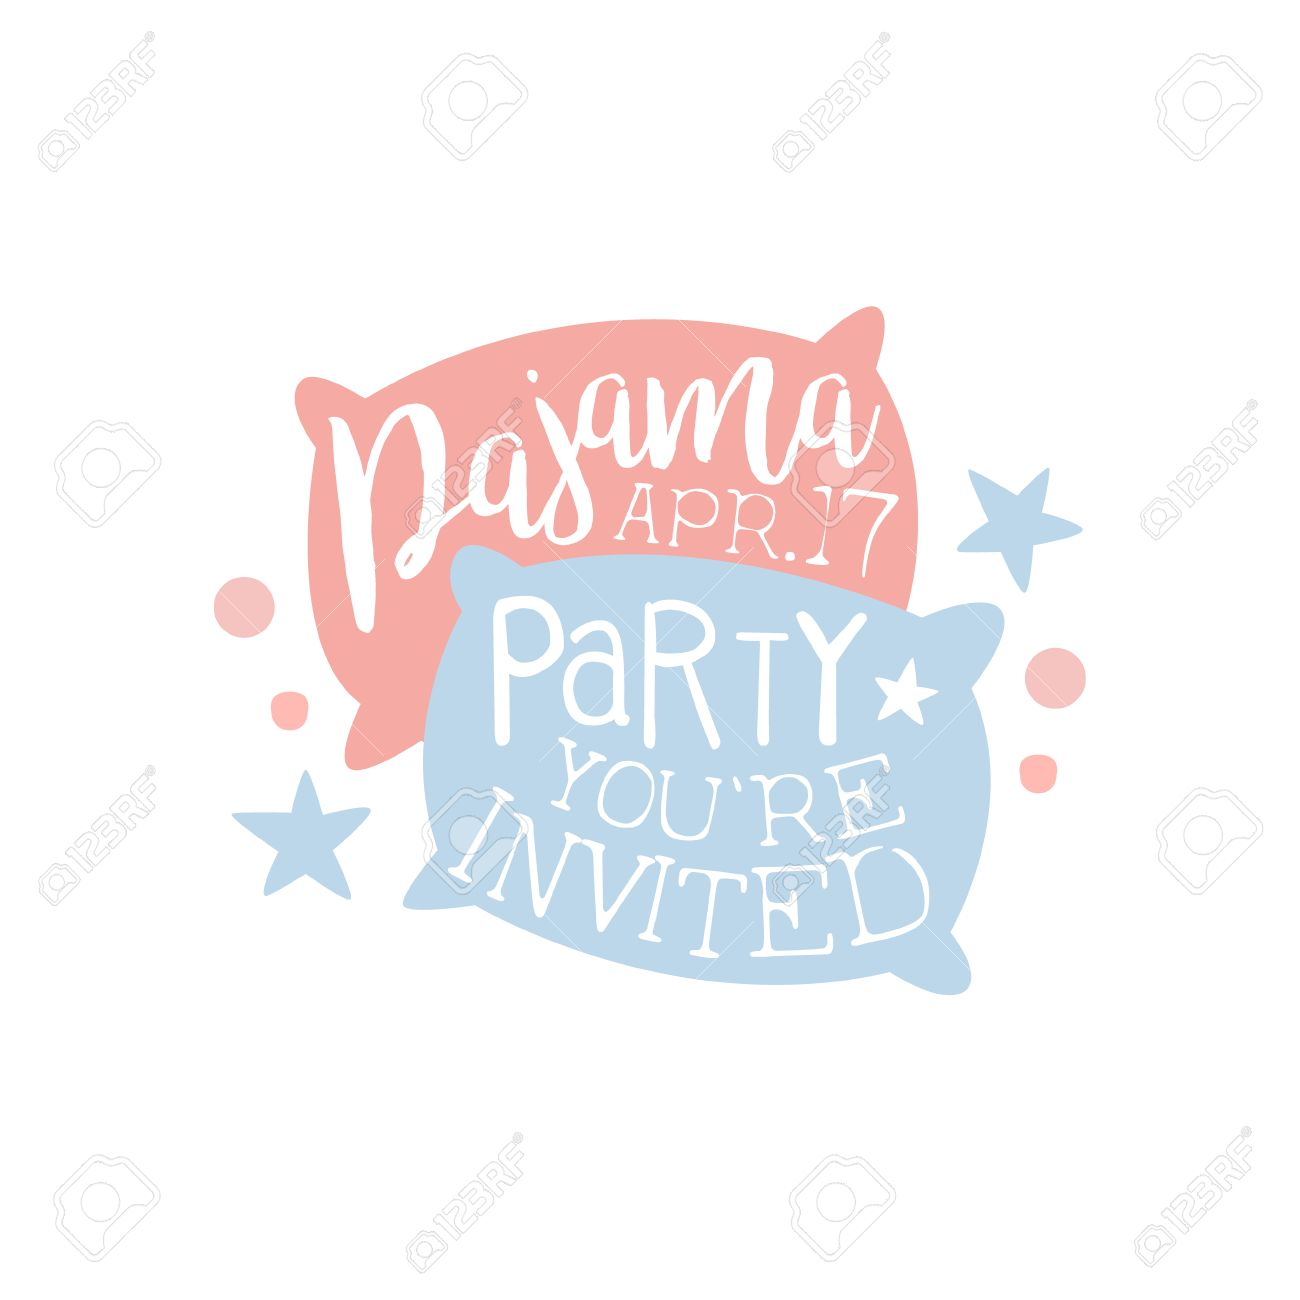 Girly Pajama Party Invitation Card Template With Two Pillows ...